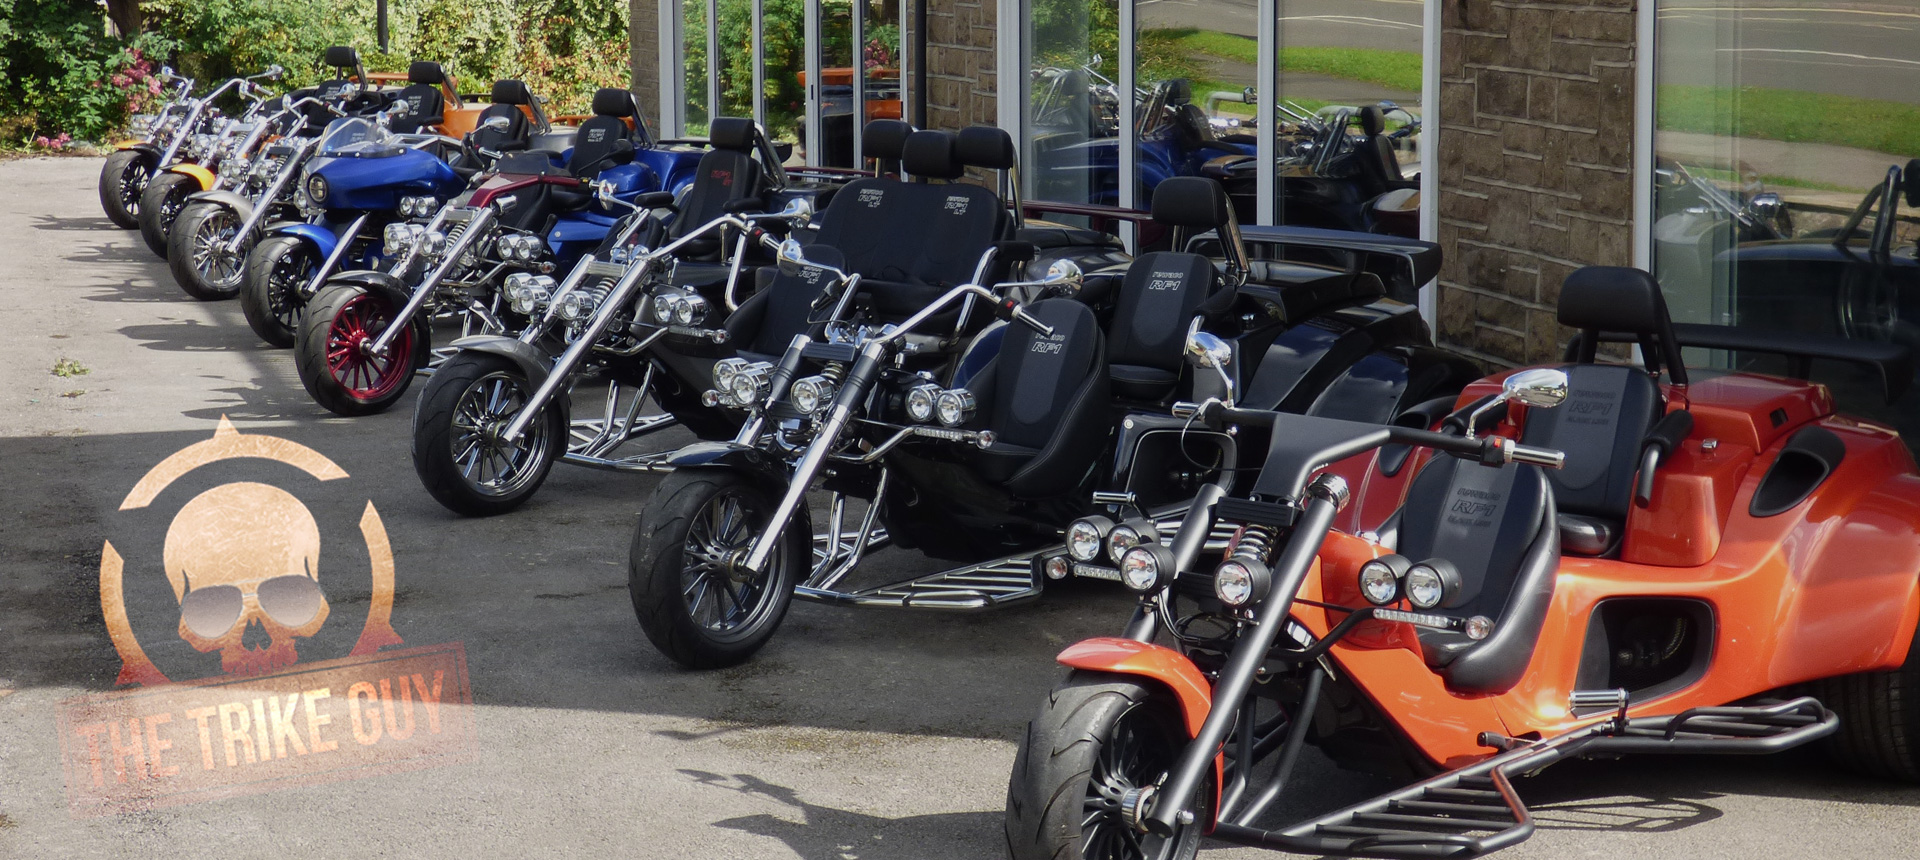 The UK's No.1 for New & Used Trikes & Official Rewaco Main Dealer